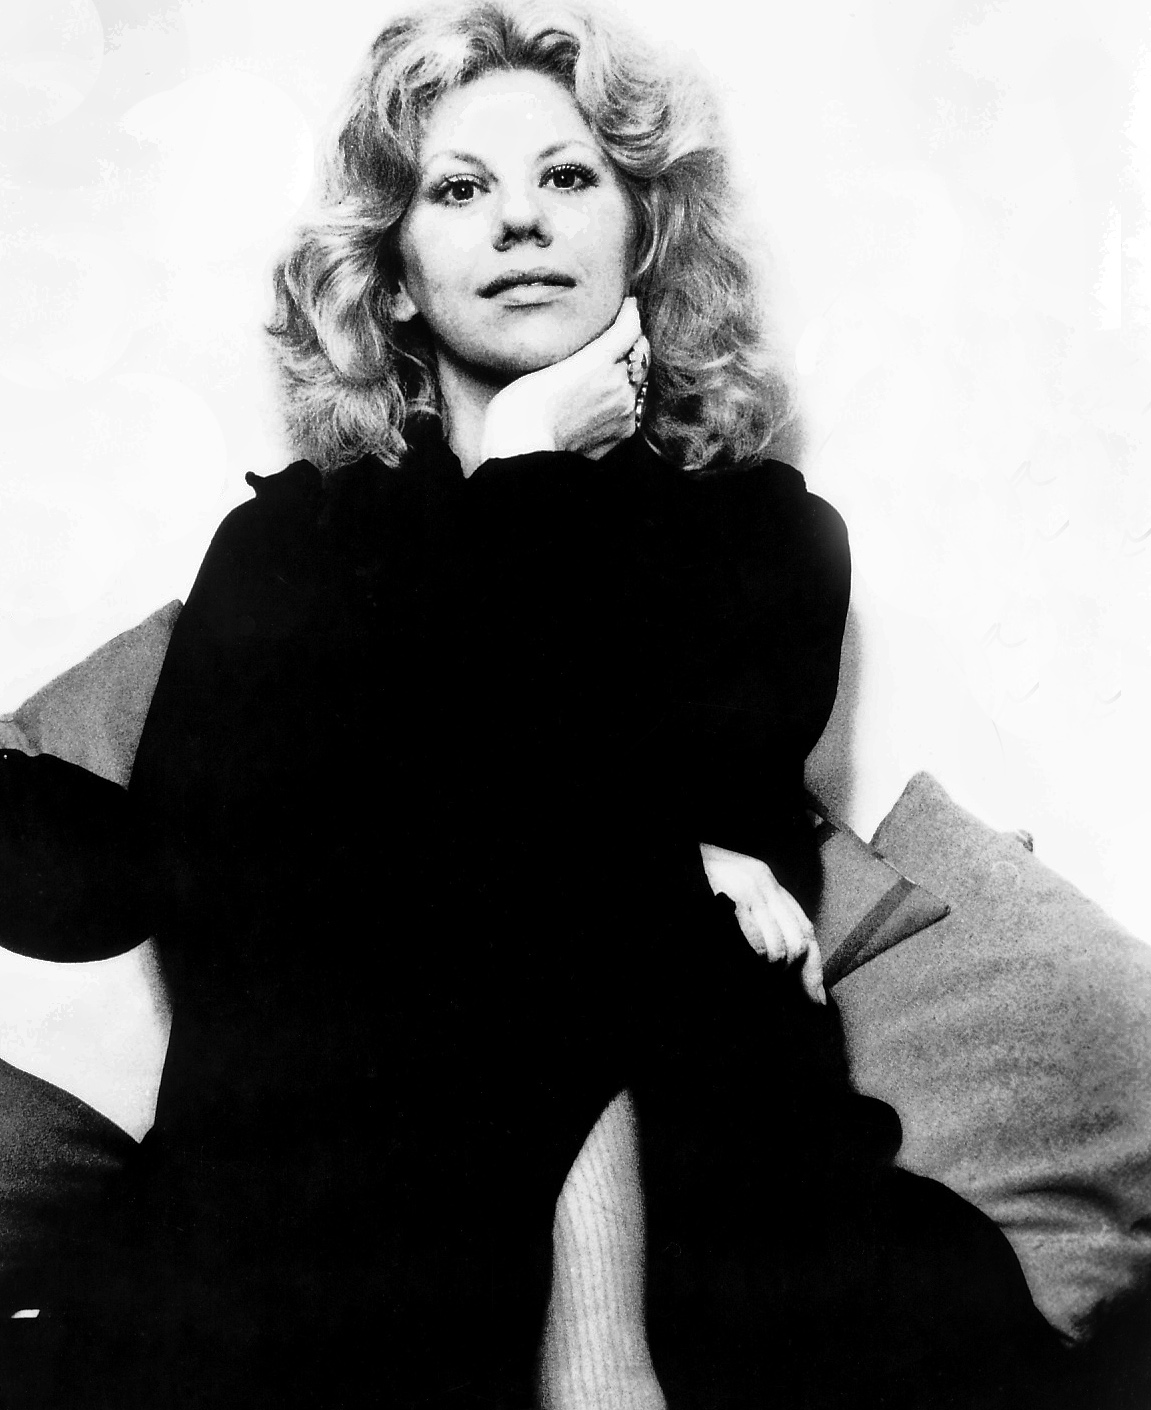 Portrait of Erica Jong